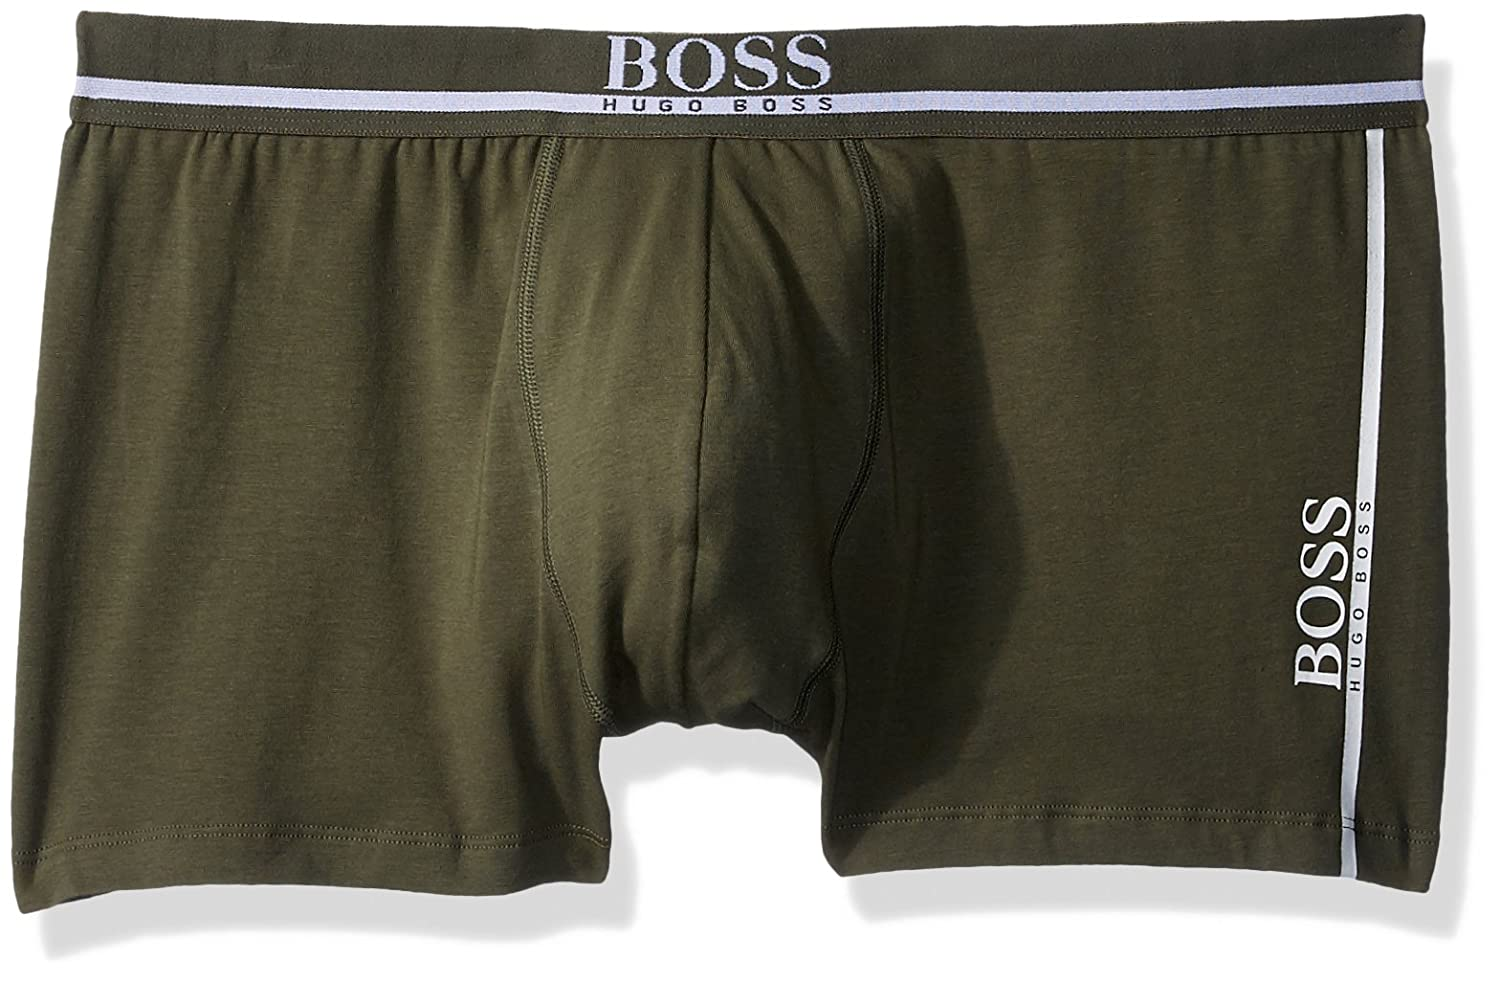 Hugo Boss BOSS Men's Trunk 24 Logo BOSS HUGO BOSS